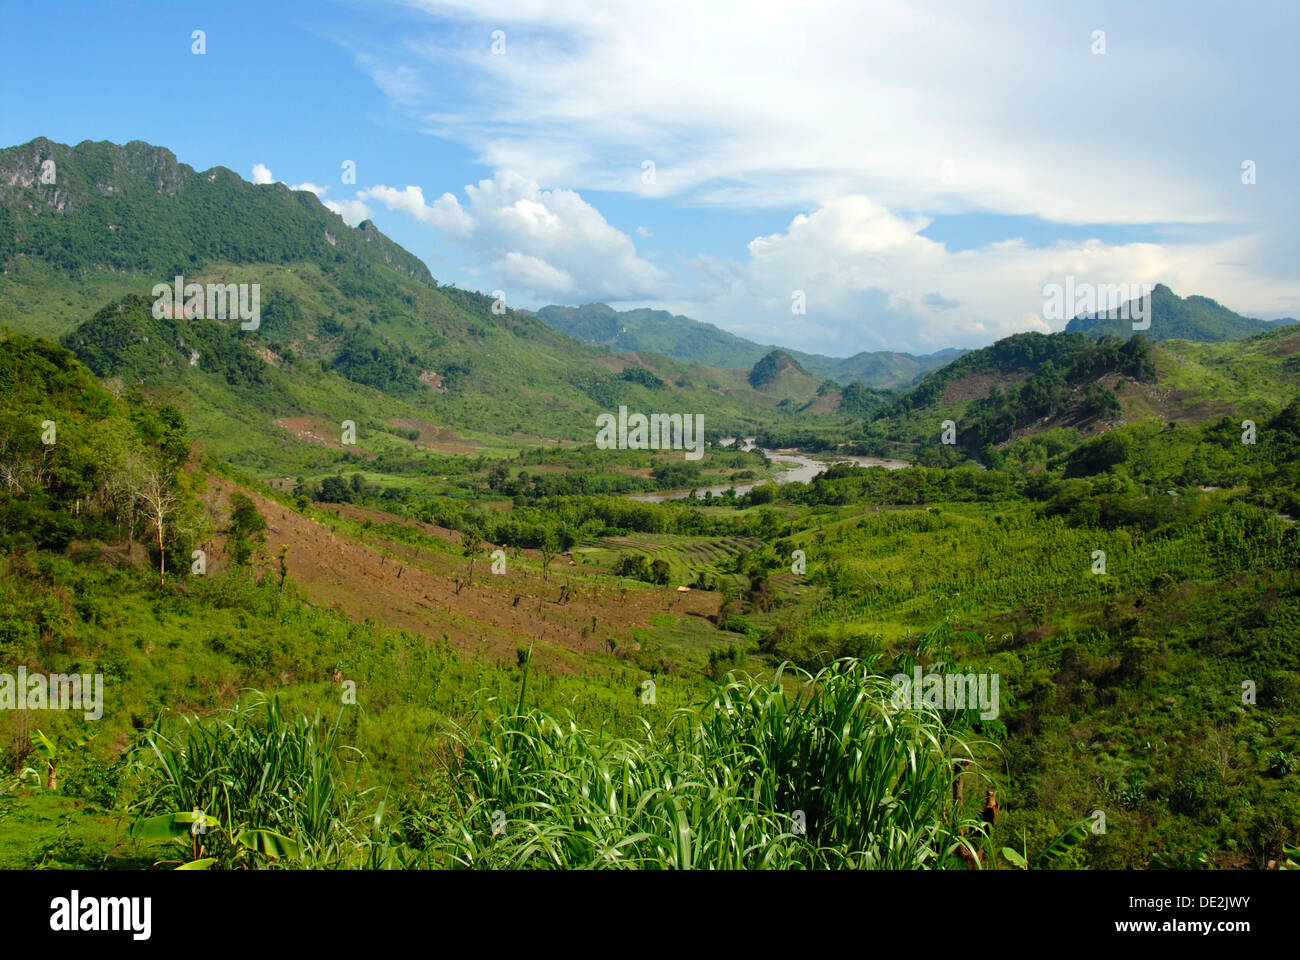 Green landscape with valleys and mountains, Nam Ou river at Ban Houay Kan, Luang Prabang province, Laos, Southeast Asia, Asia - Stock Image